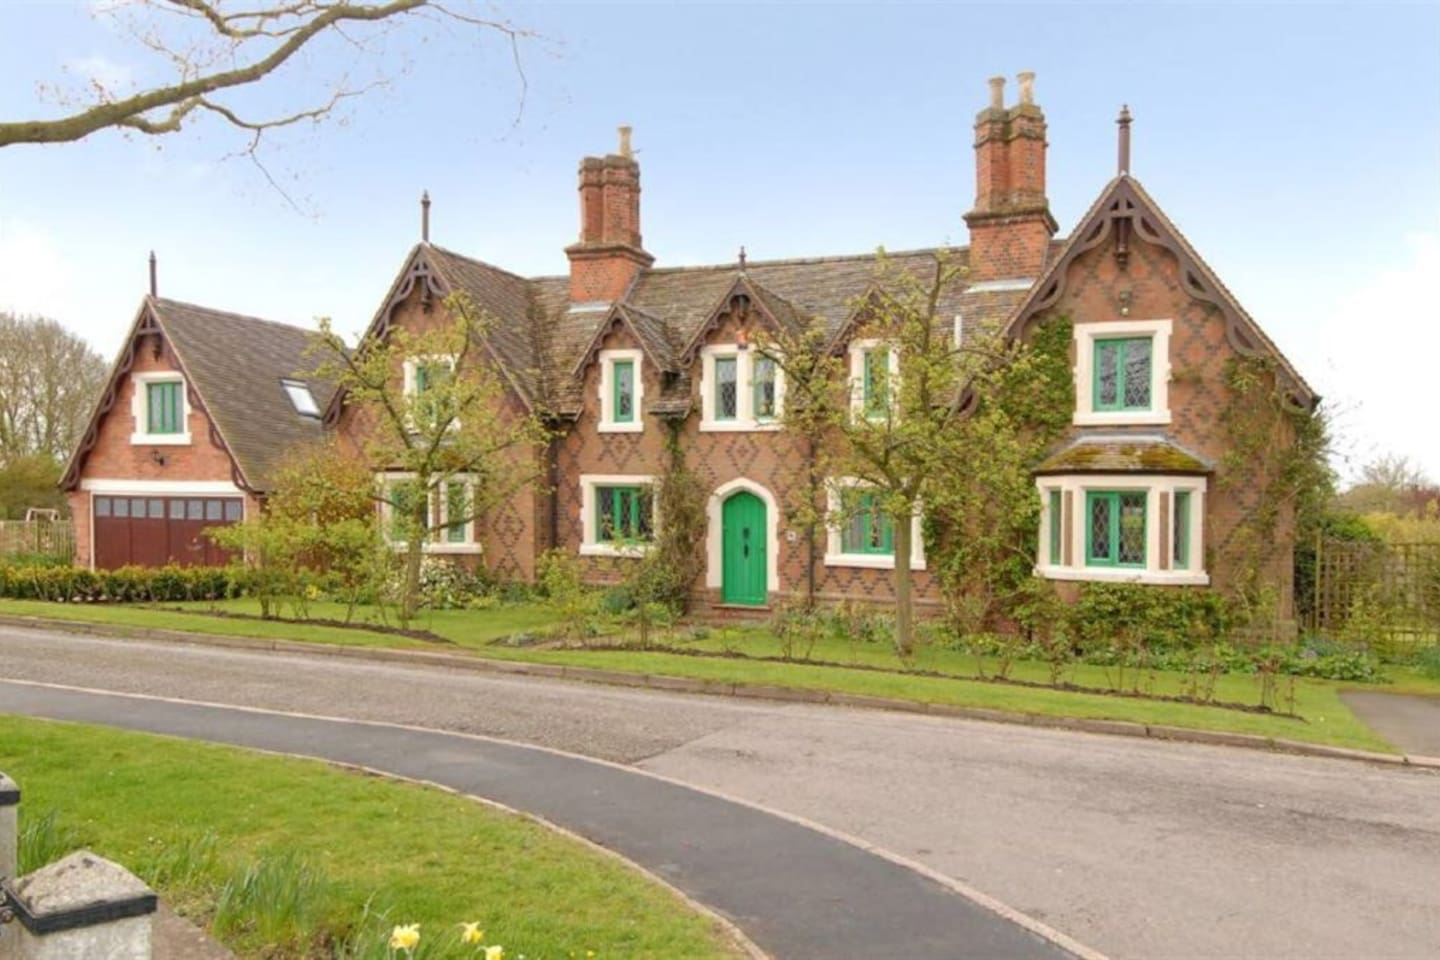 Our lovely home, originally 4 separate Alms houses (workers cottages) & now one family home, the Annexe sits on the left hand side of this picture above the detached garage, with its own separate side entrance.